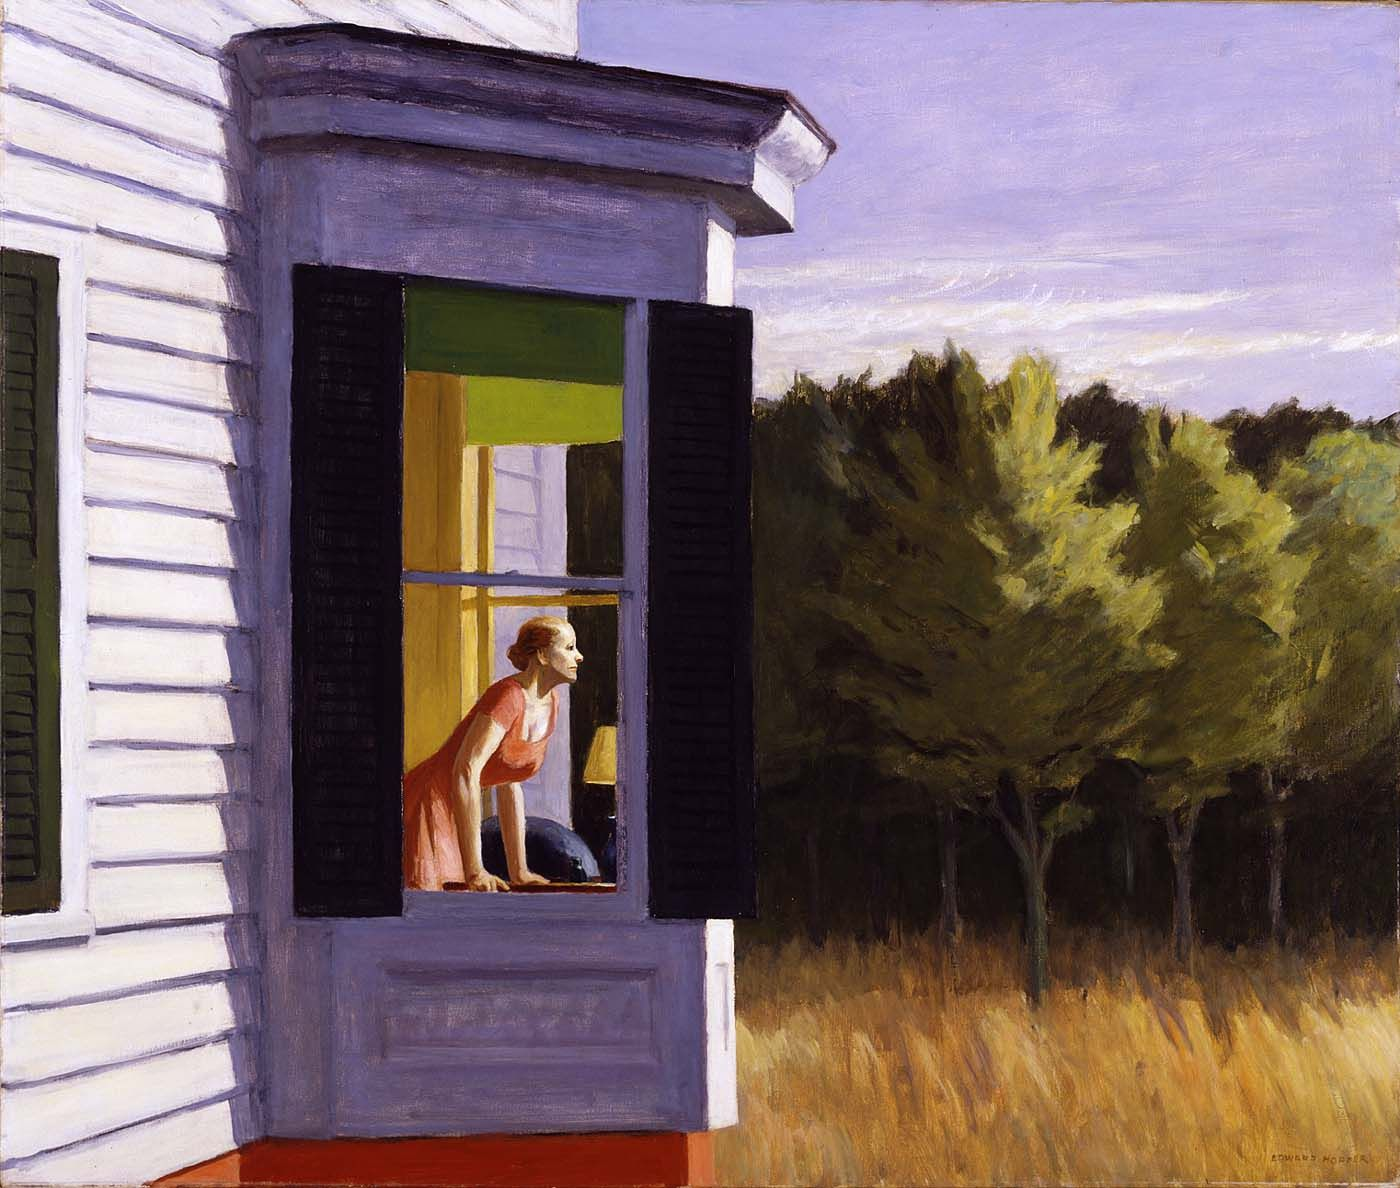 Edward hopper art hopper fen tre peinture window for Peinture sur fenetre